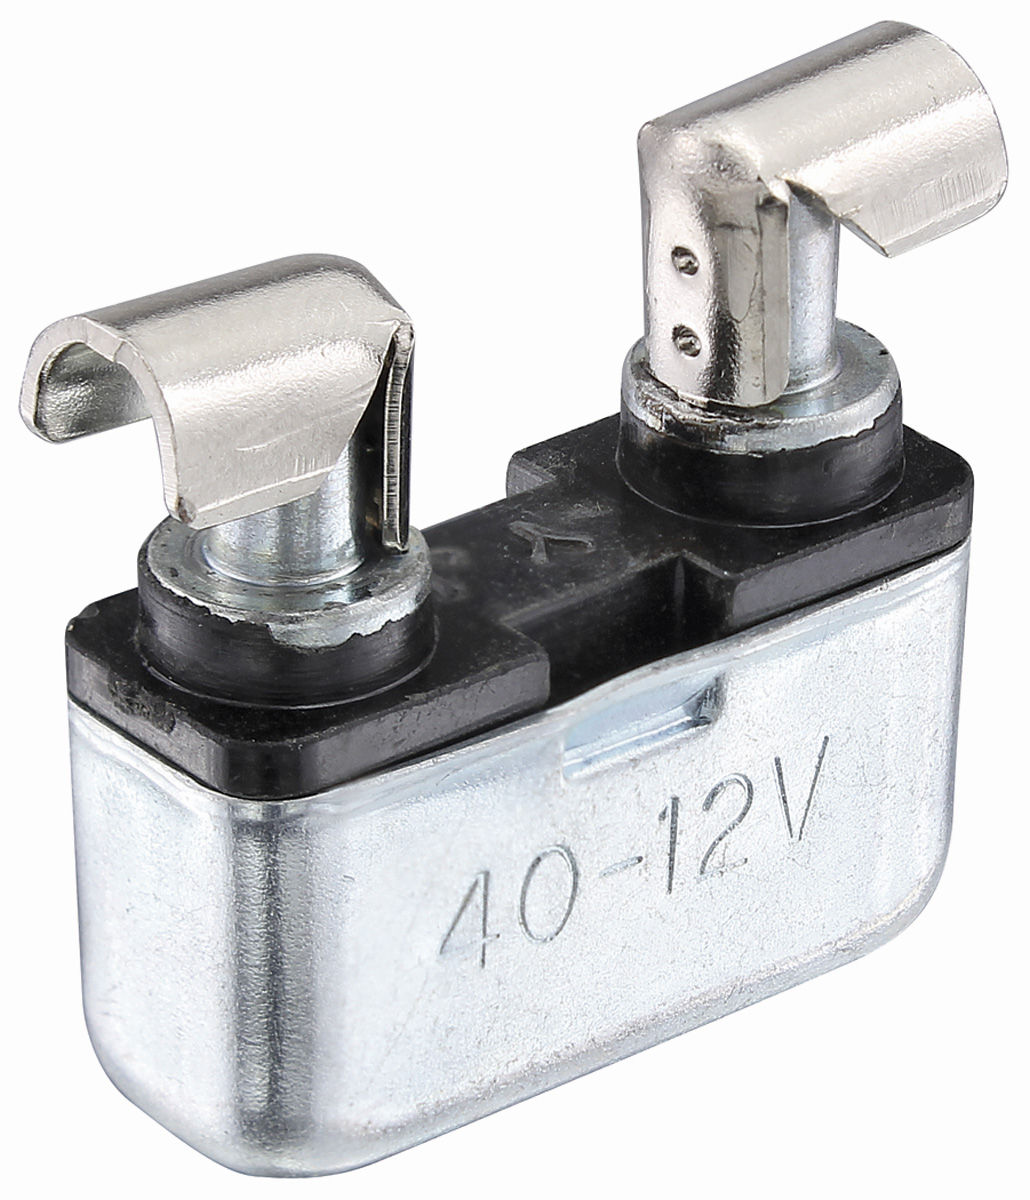 1972 1978 eldorado power accessory circuit breaker 40 amp fuse block mounted  [ 1030 x 1200 Pixel ]